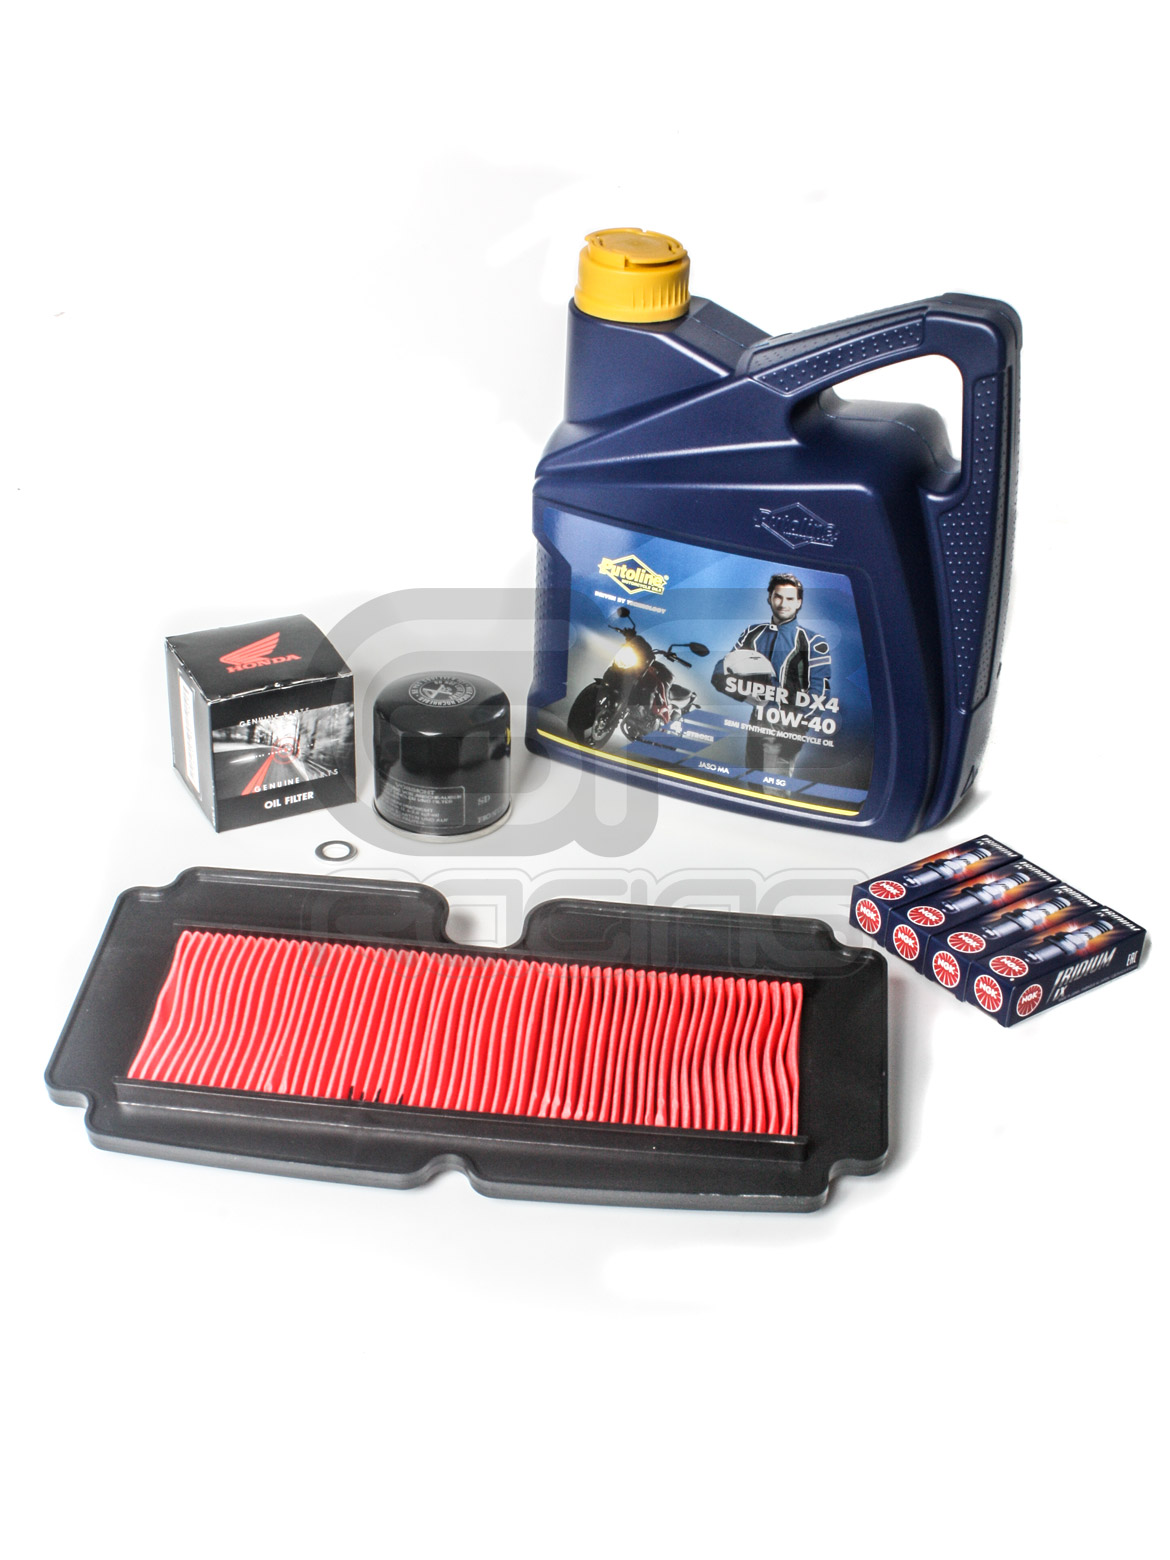 CBR400 NC29 Gull Arm Service Kit